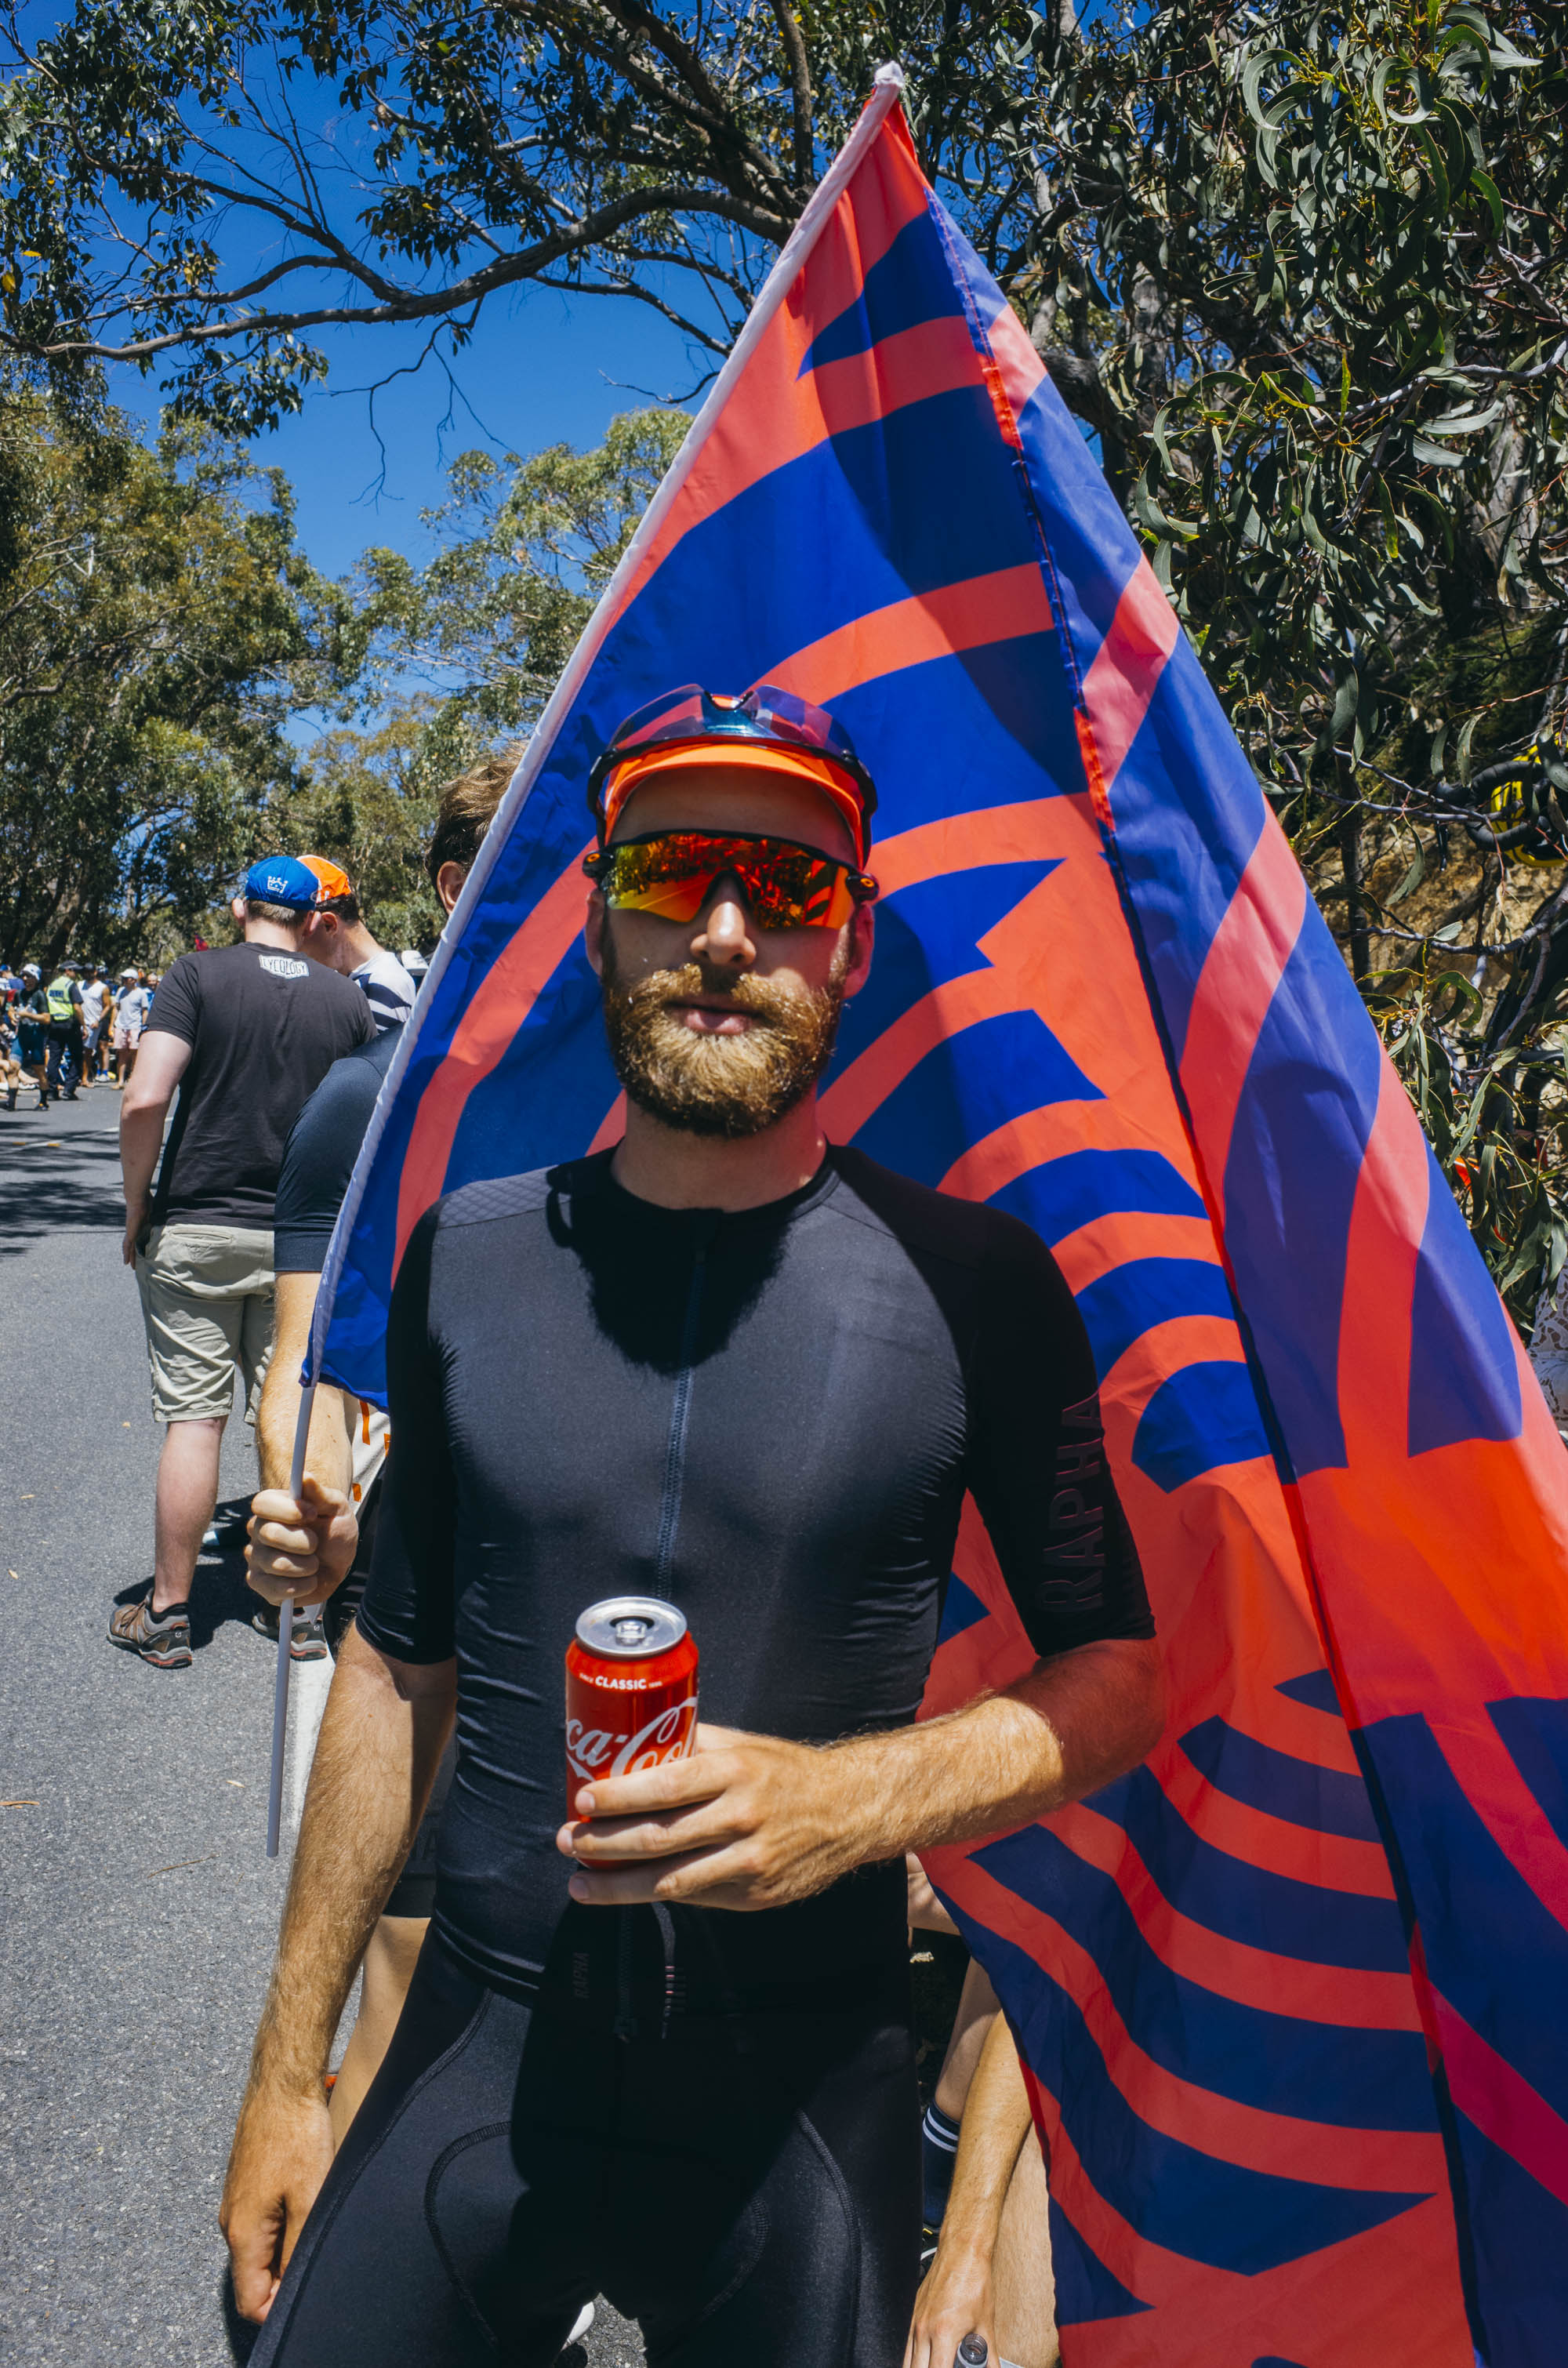 """""""Brooo the thing I love the most about the Tour Down Under is Coca-Cola man, with the heat I end up dreaming about ice cold cans all day every day."""" - – Matty Boi"""